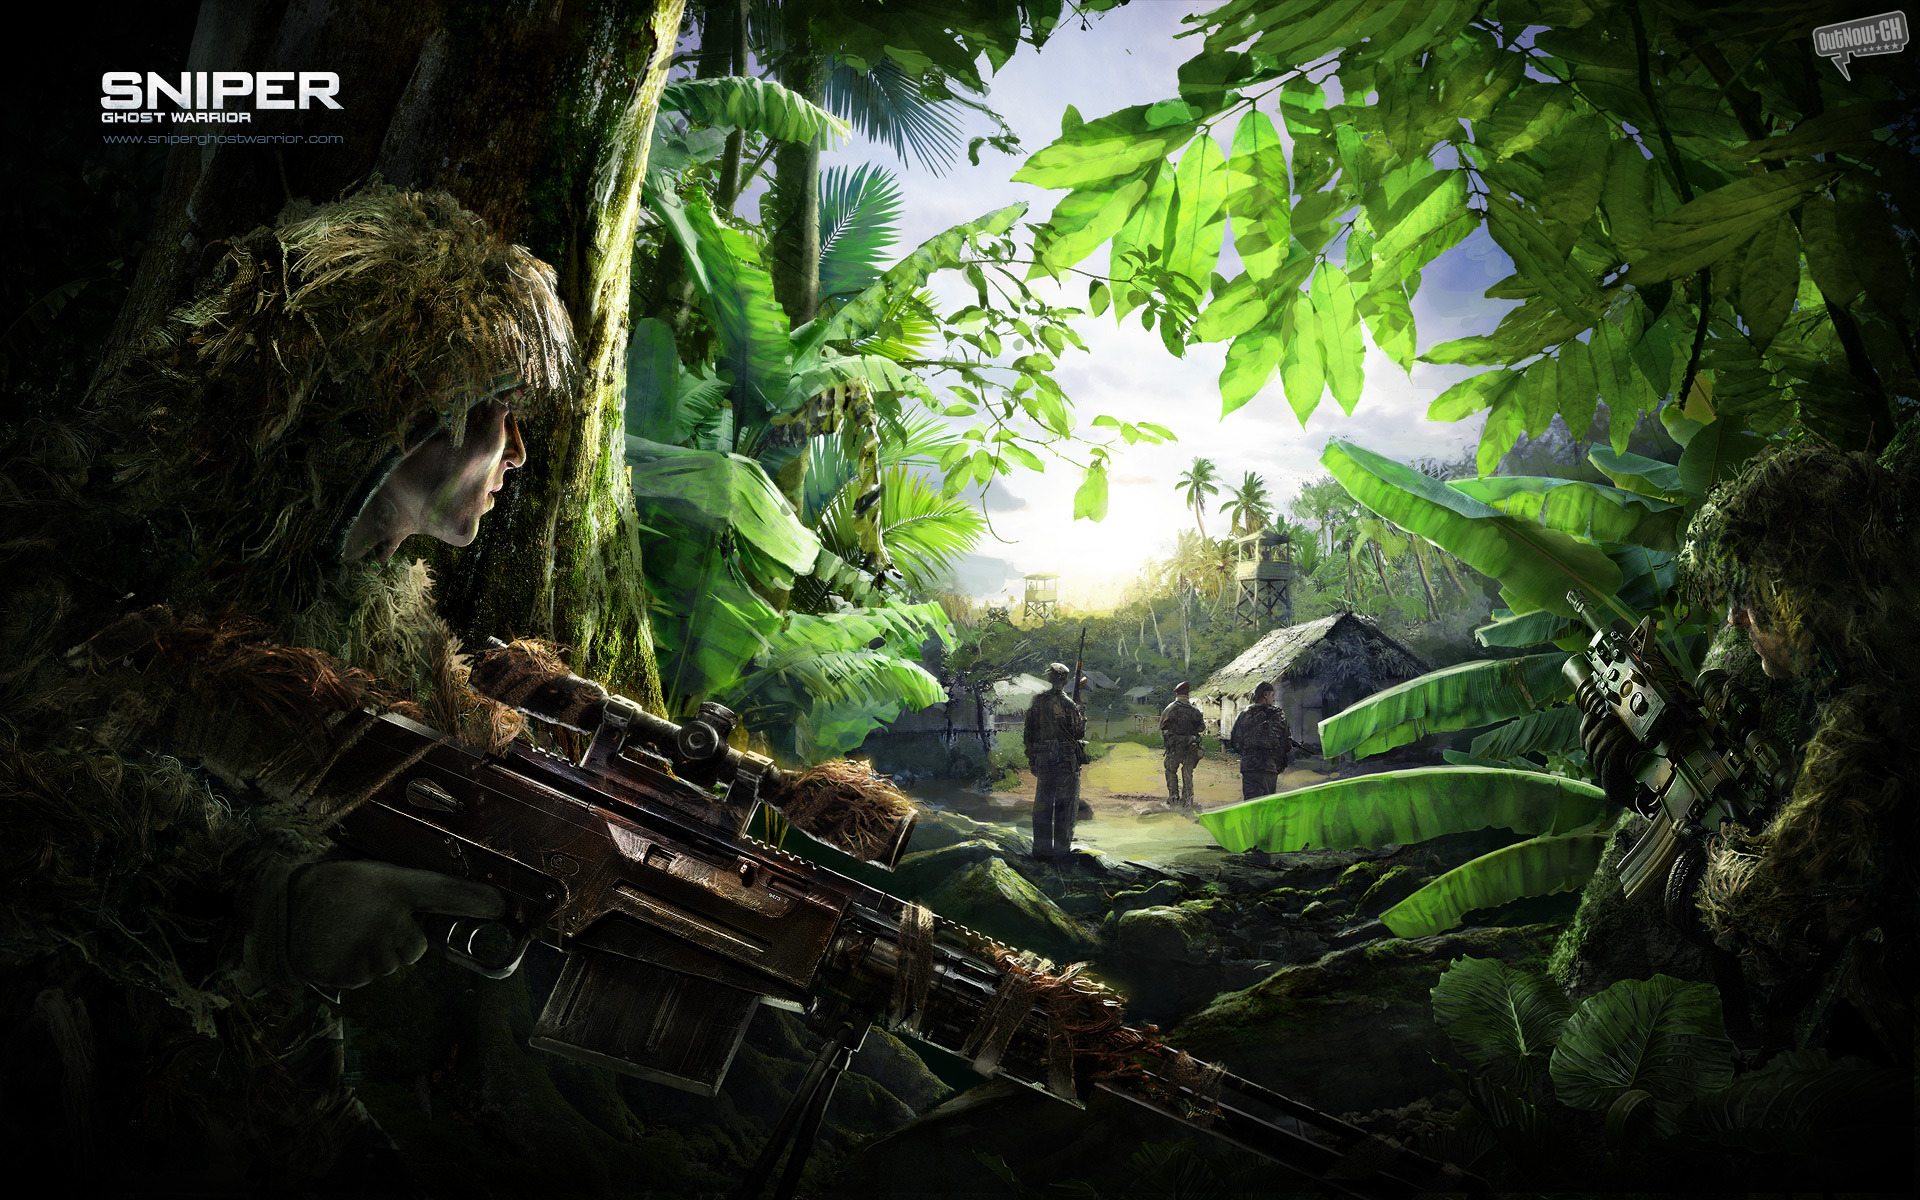 1920x1200 Sniper Ghostwarrior desktop PC and Mac wallpaper 1920x1200